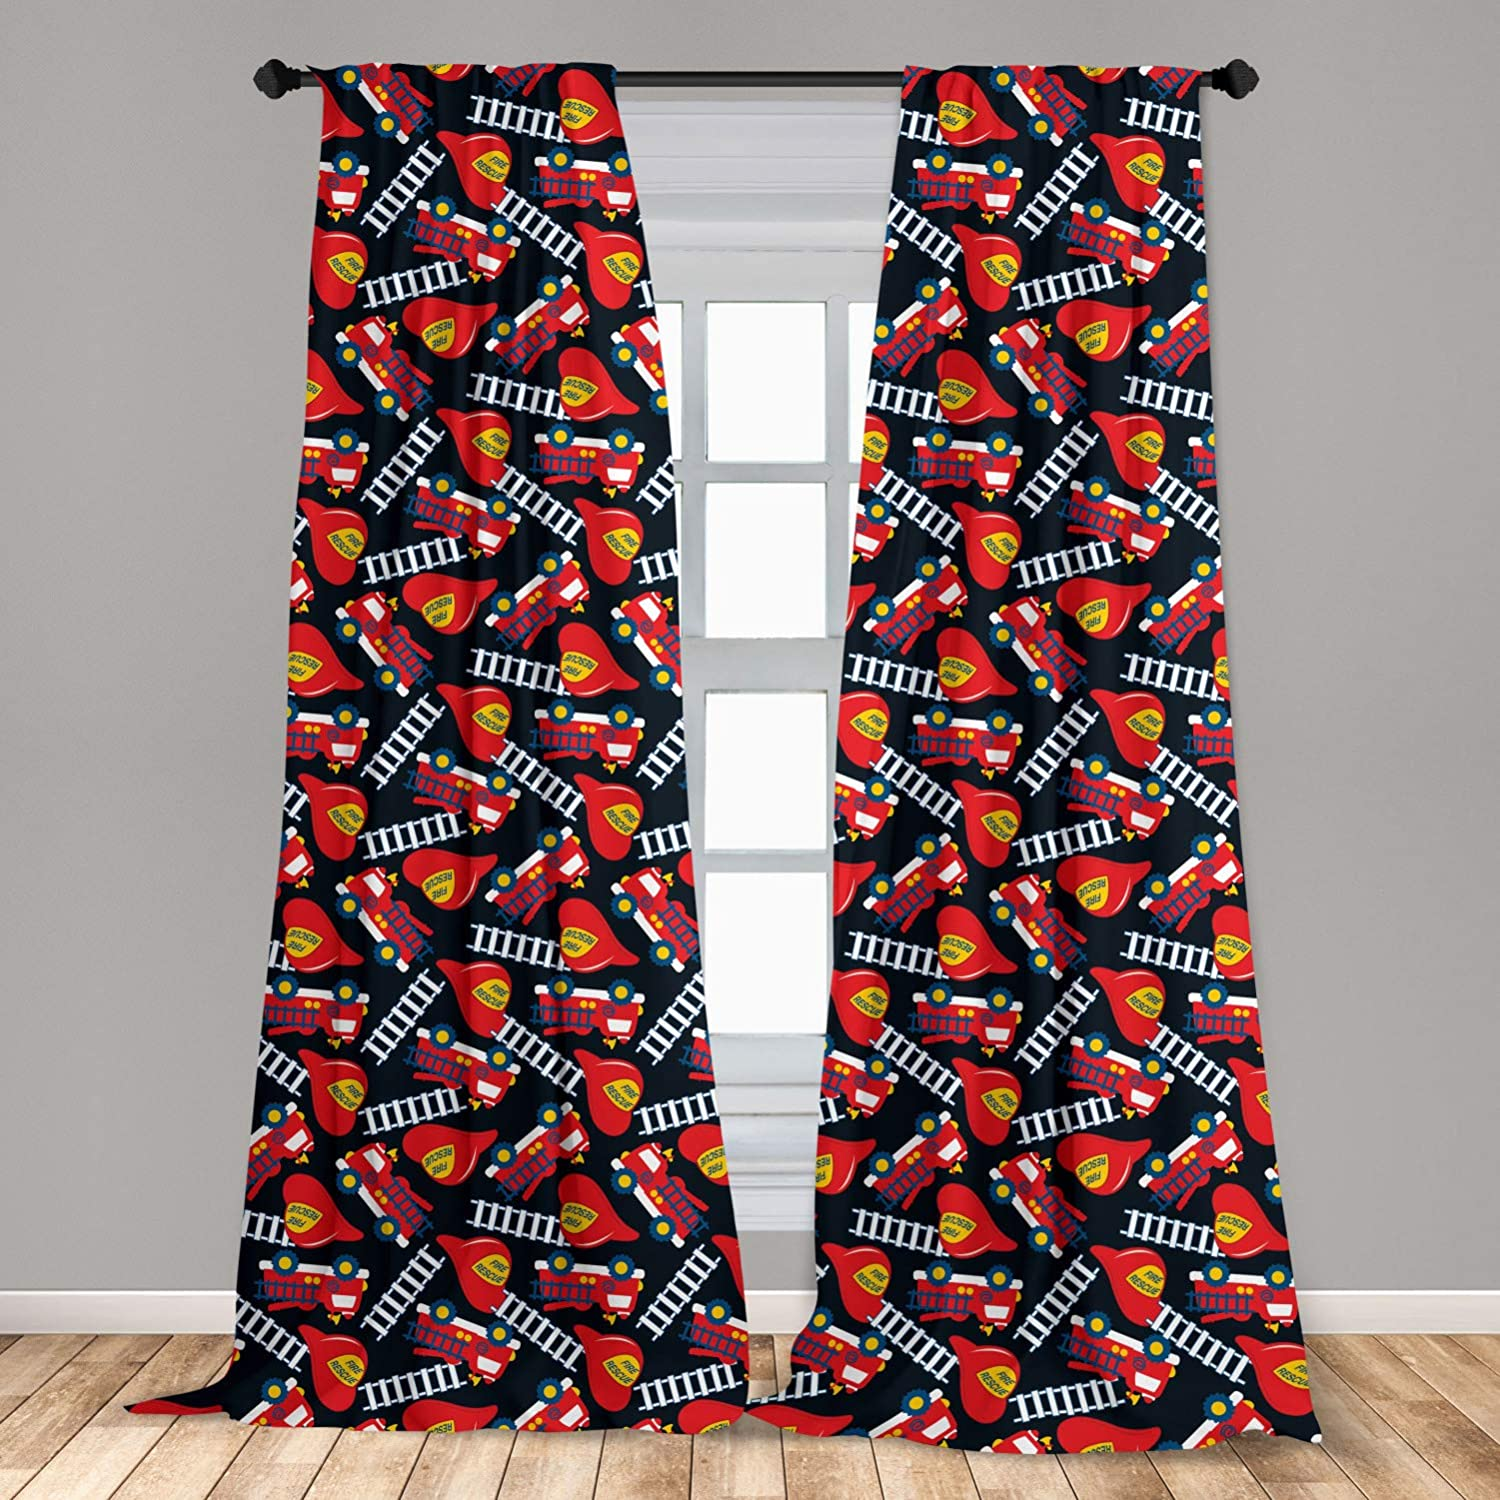 Lunarable Fire Truck 2 Panel Curtain Set, Service Rescue Inscription Ladders and Toy Vehicles Kids Cartoon, Lightweight Window Treatment Living Room Bedroom Decor, 56